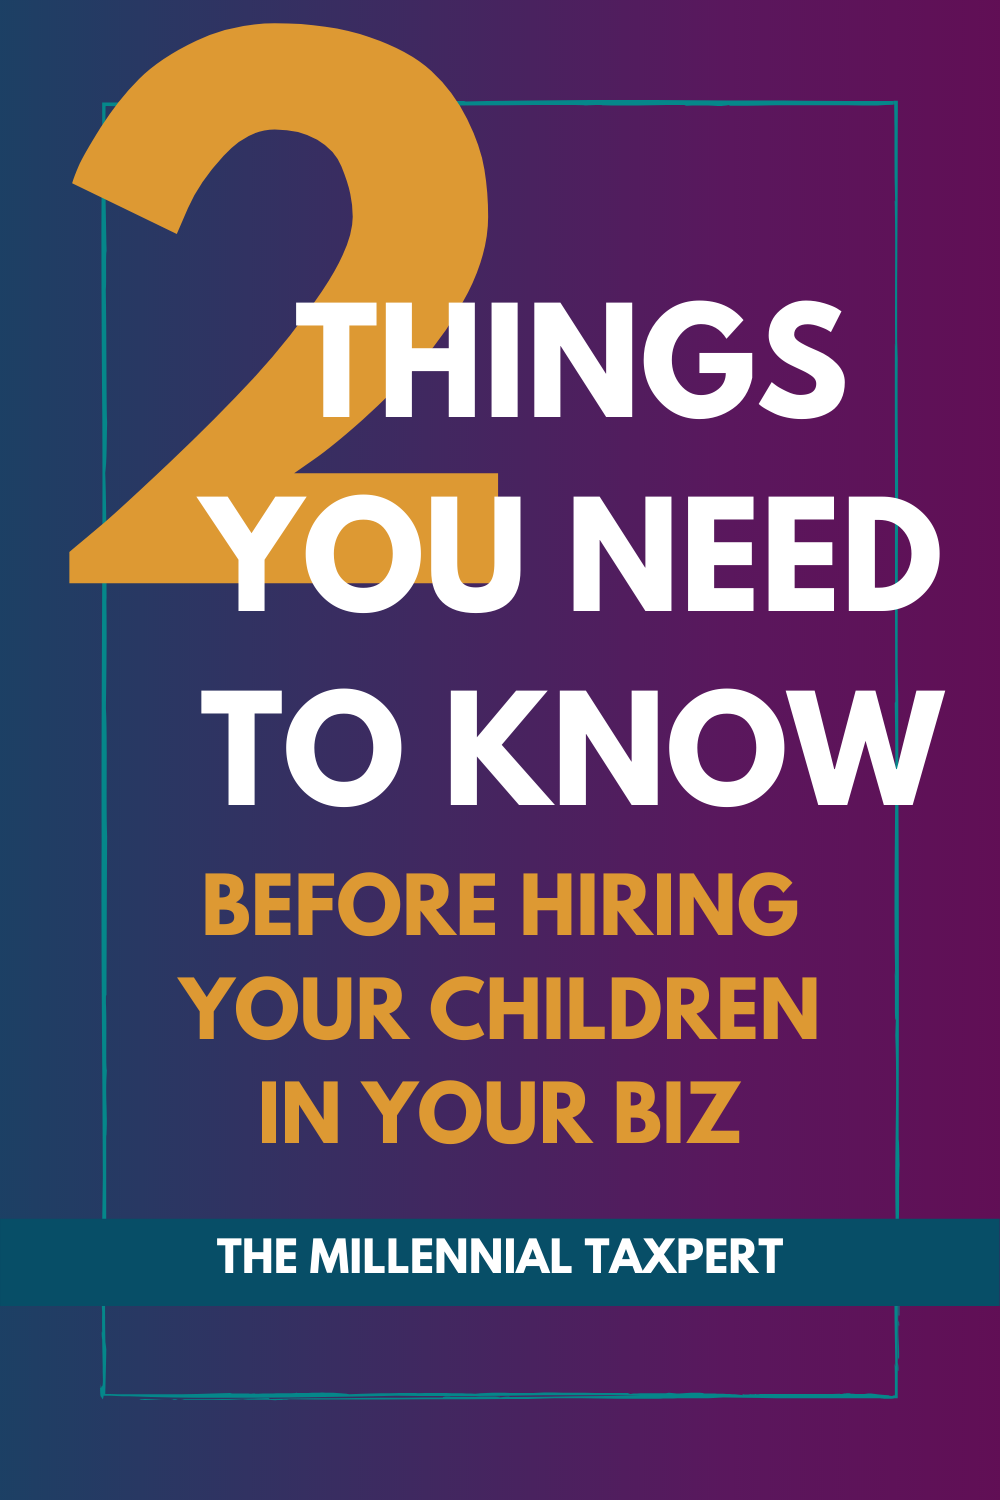 Pinterest Graphic: 2 things you need to know before hiring your children